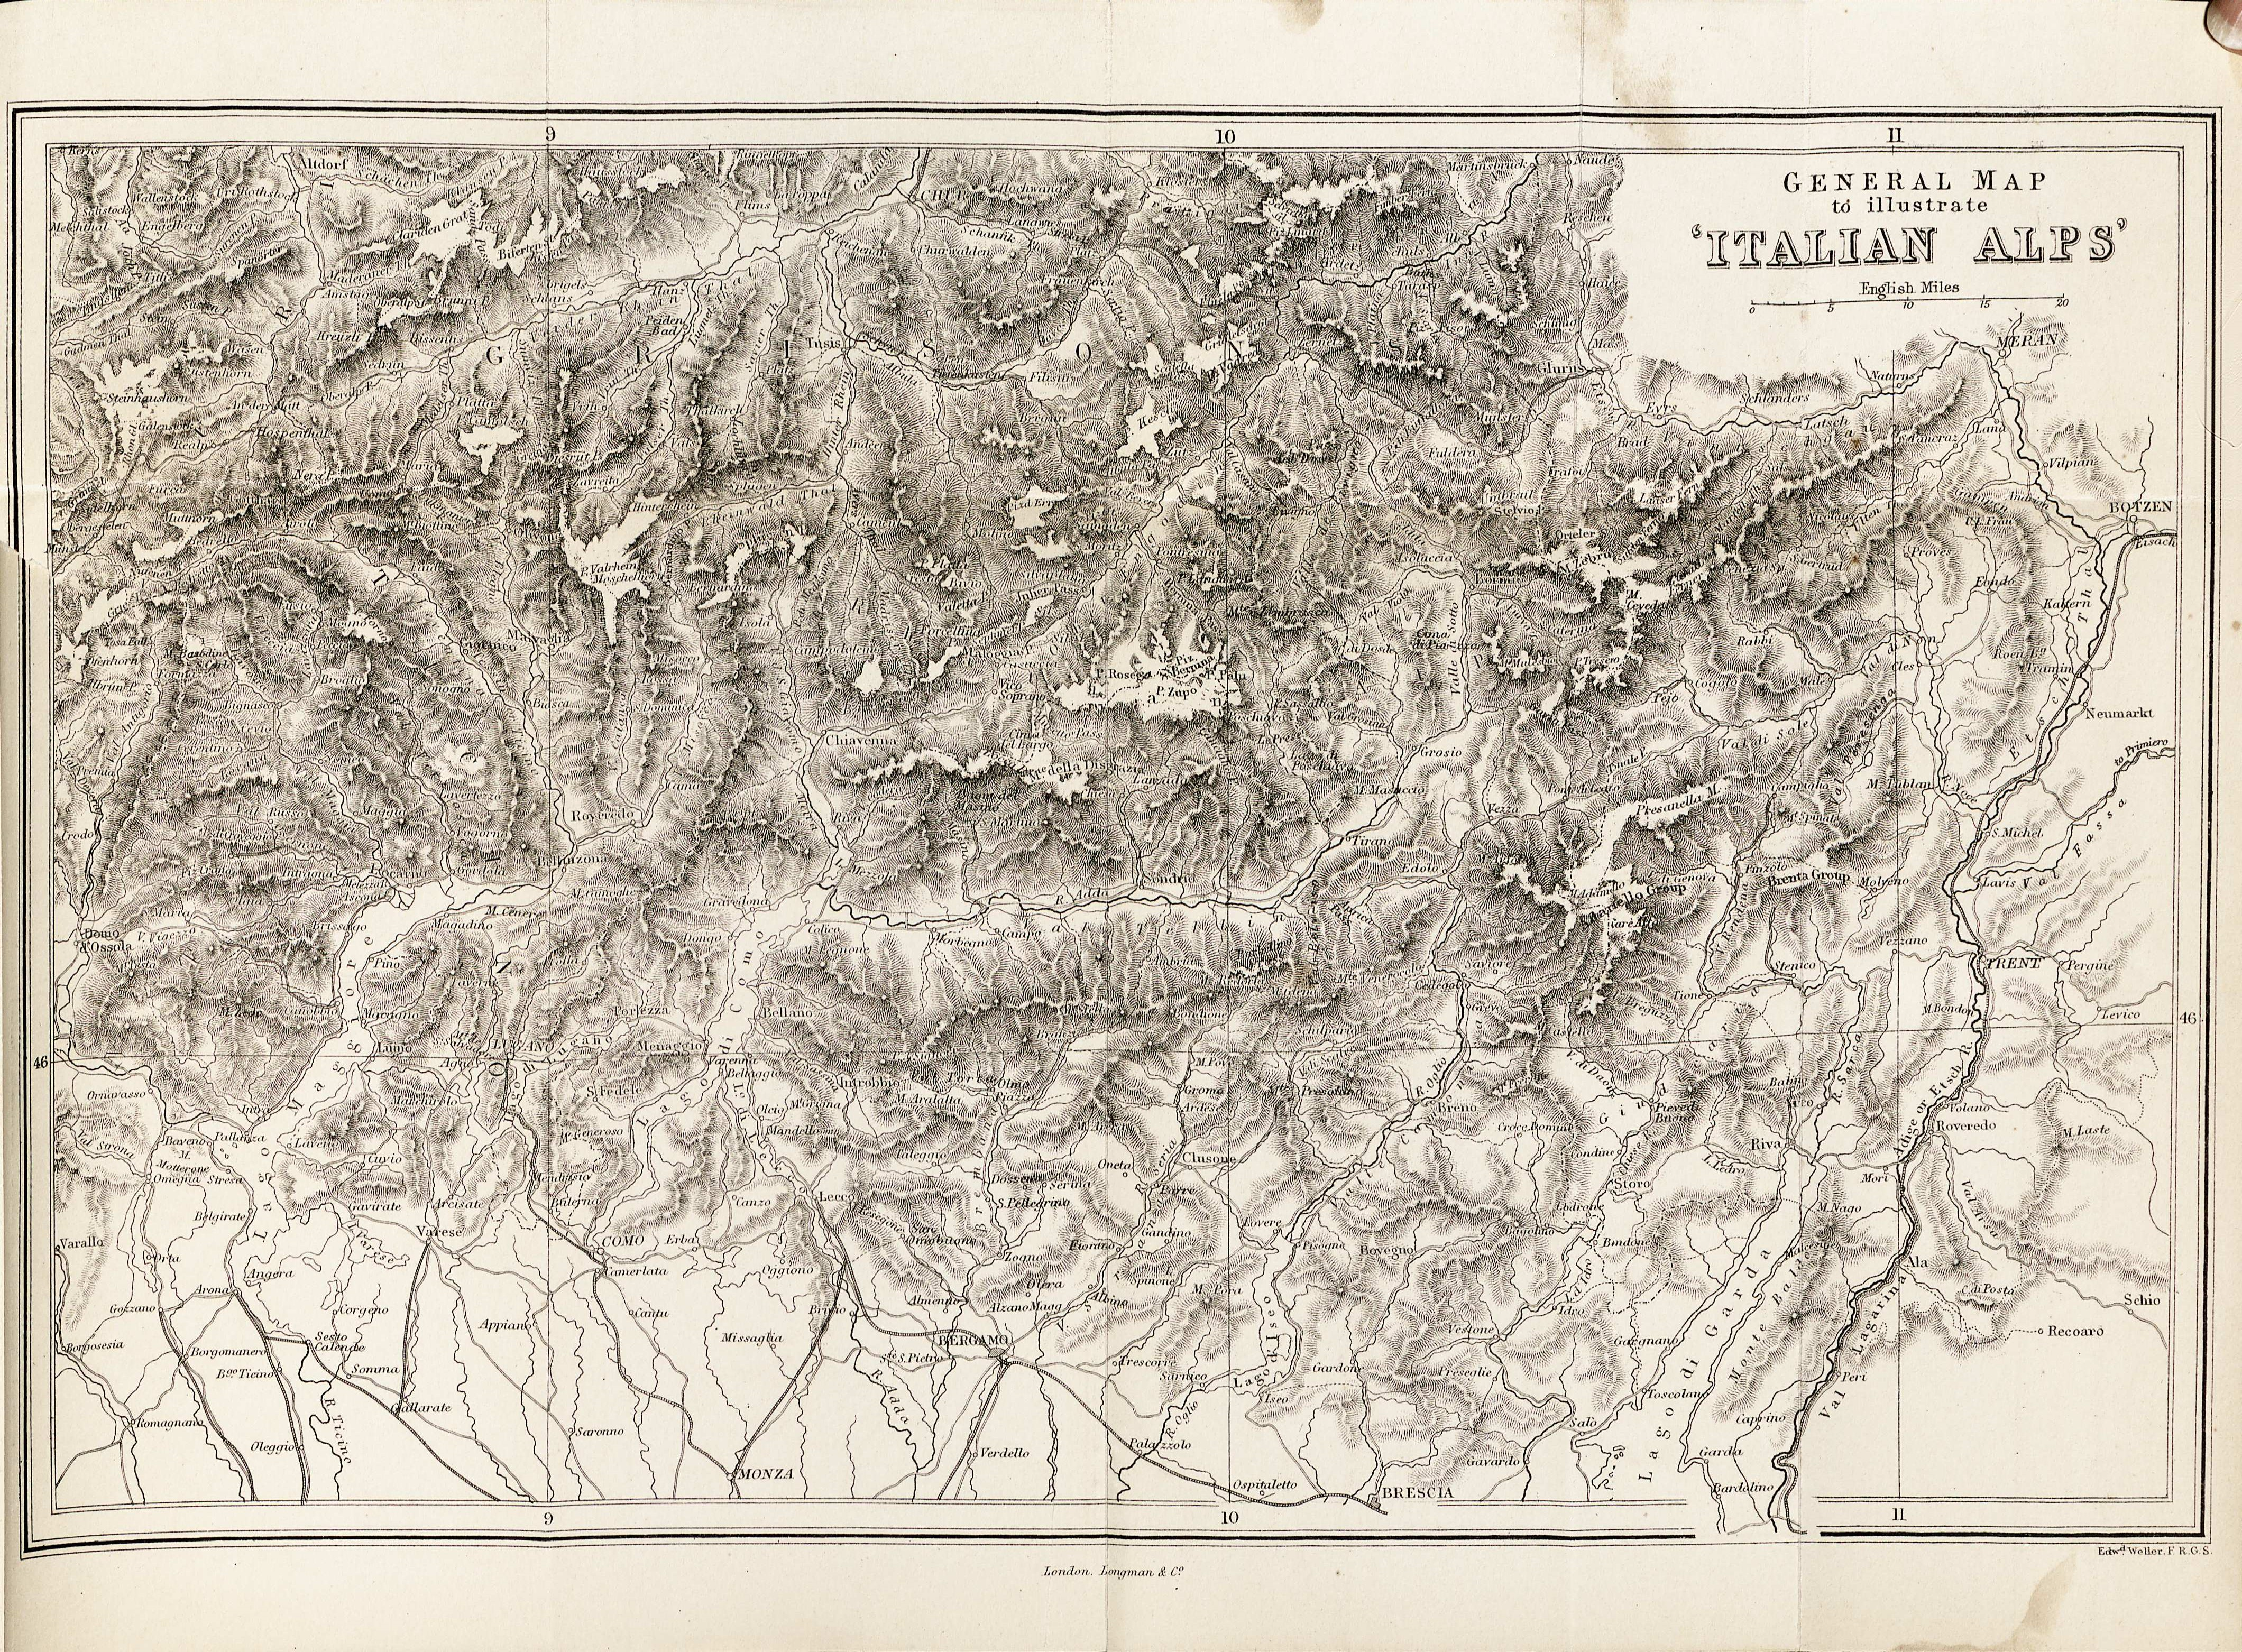 Map of Italian Alps Italian Alps c 1875).jpg